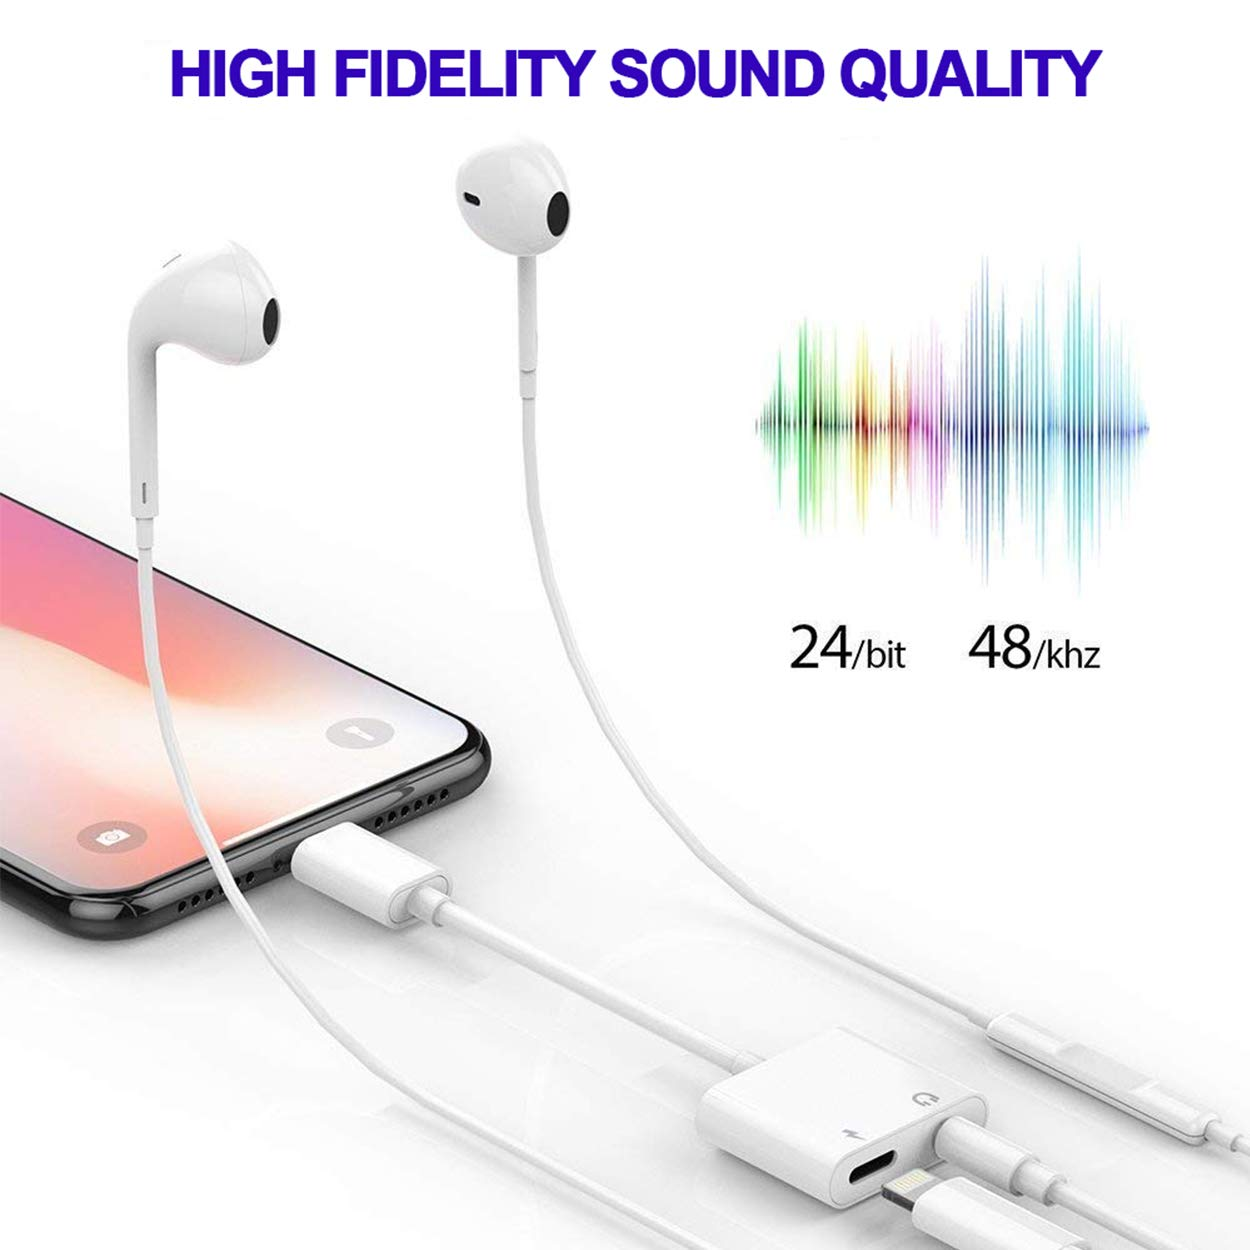 for iPhone Adapter Jack Headphone Adapter for iPhone Dongle Aux Audio Cables Adaptor Headset Splitter Audio /& Charger /& Call /& sync Cable Accessory for iPhone Xs//Xs Max//XR// 8//8 Plus//X 10 // 7//7 Plus